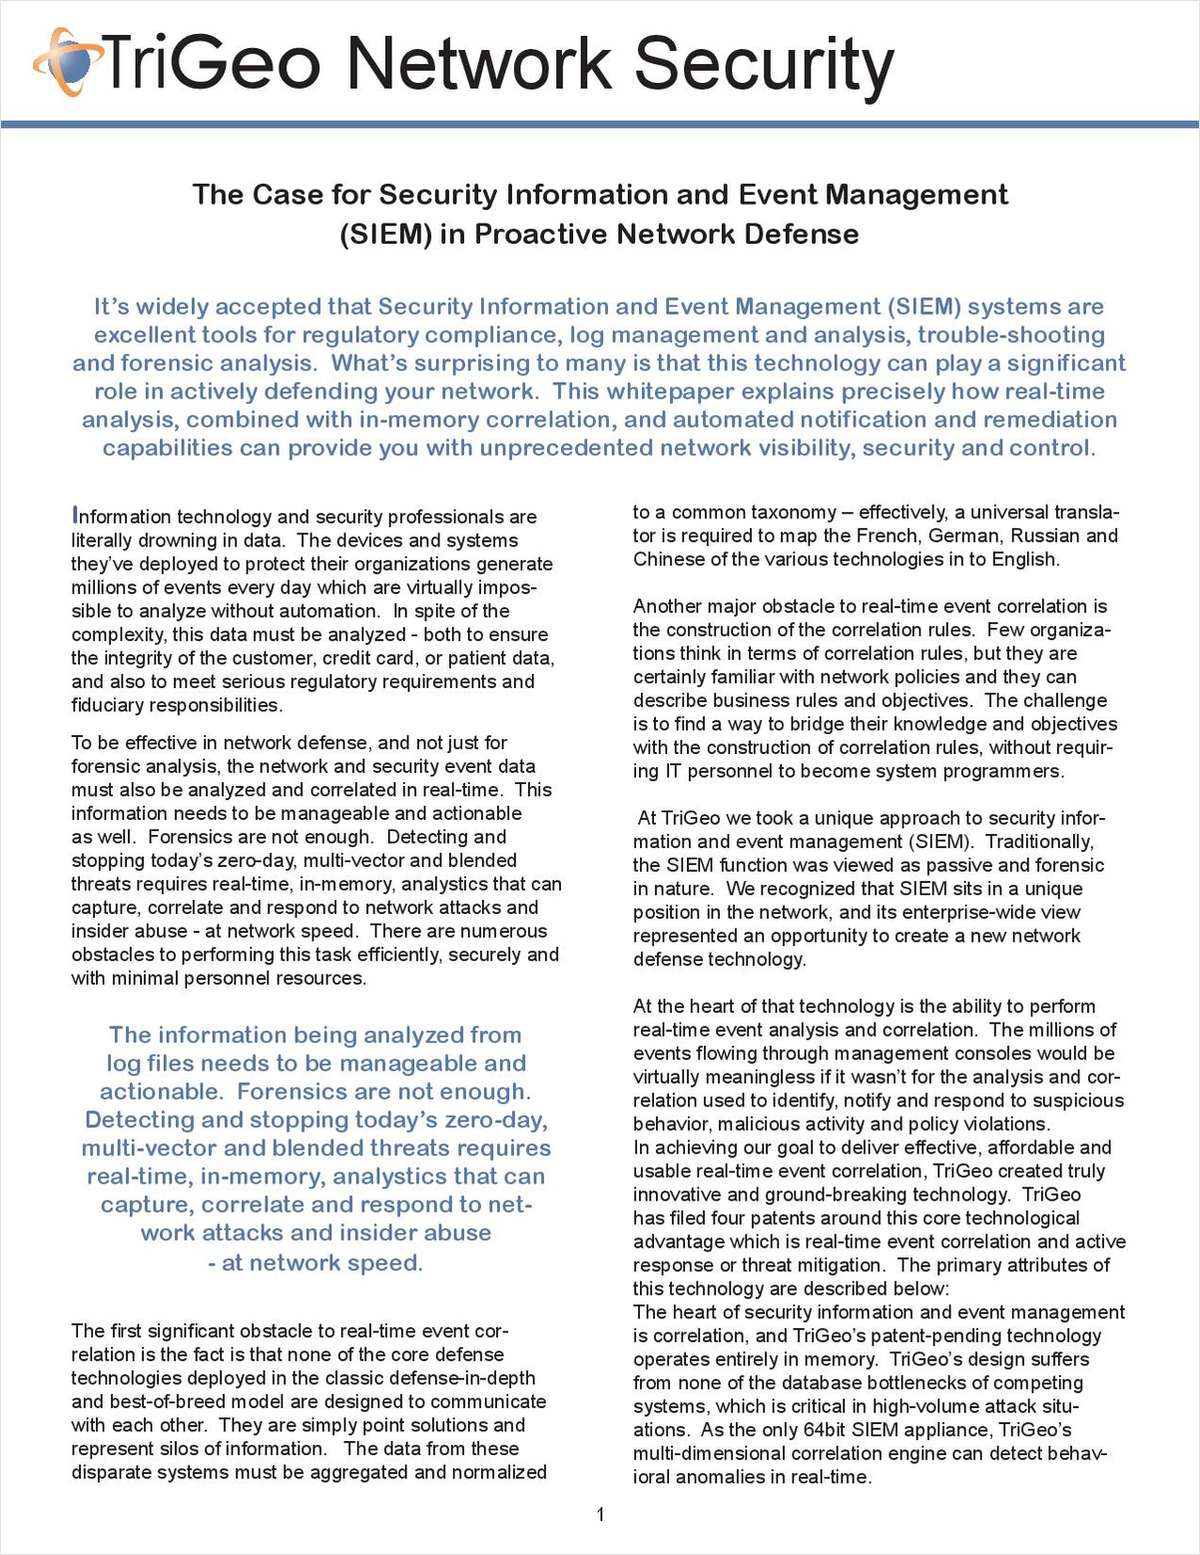 The Case for Security Information and Event Management (SIEM) in Proactive Network Defense